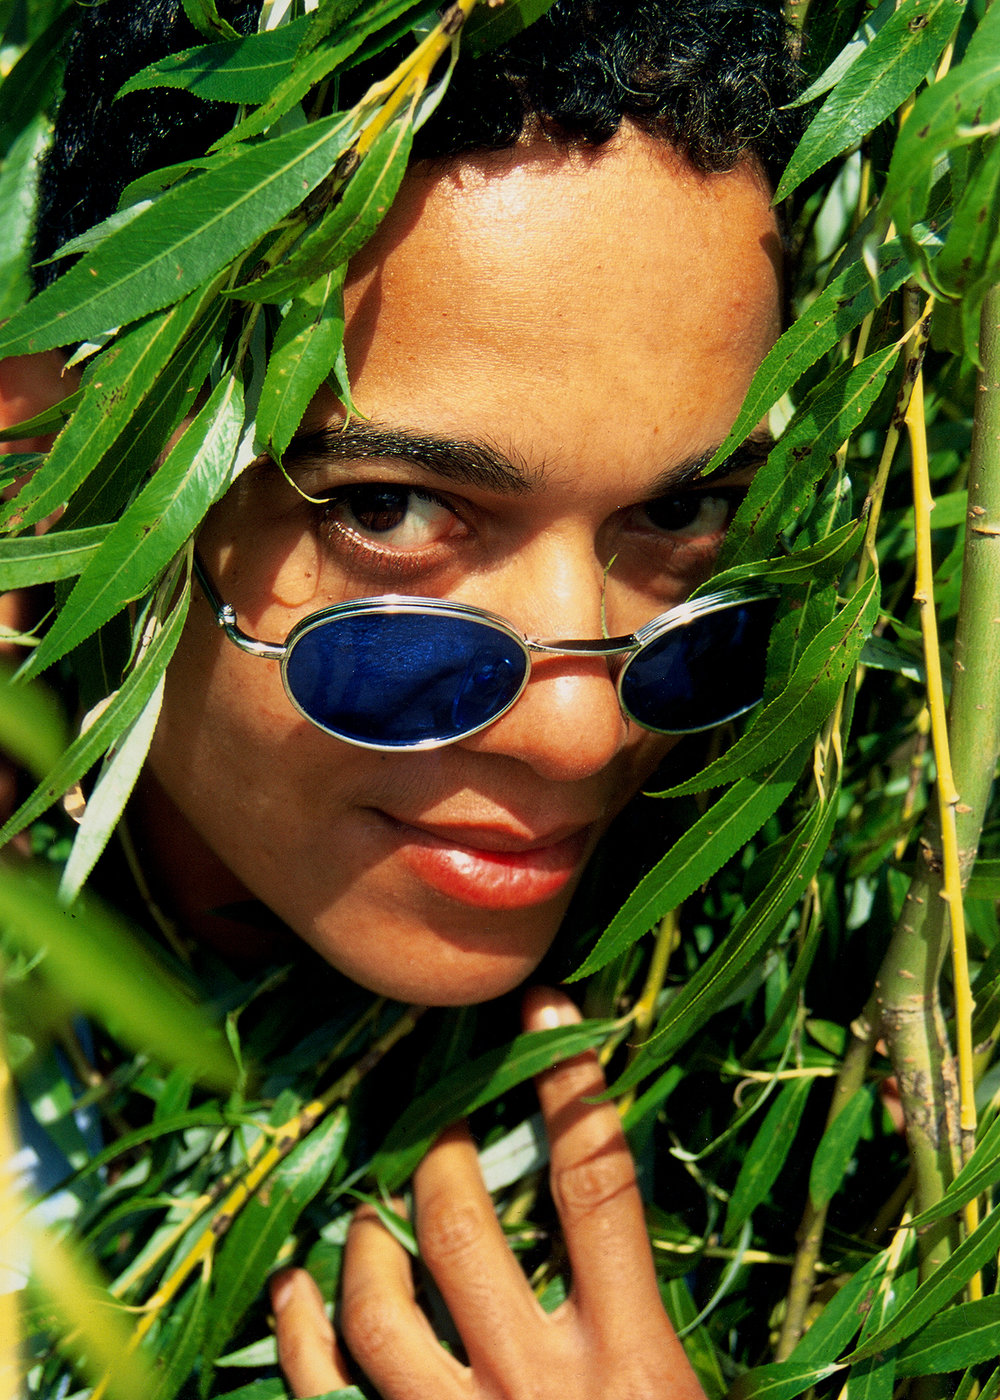 MO ASUMANG, ACTRESS, BERLIN 1998